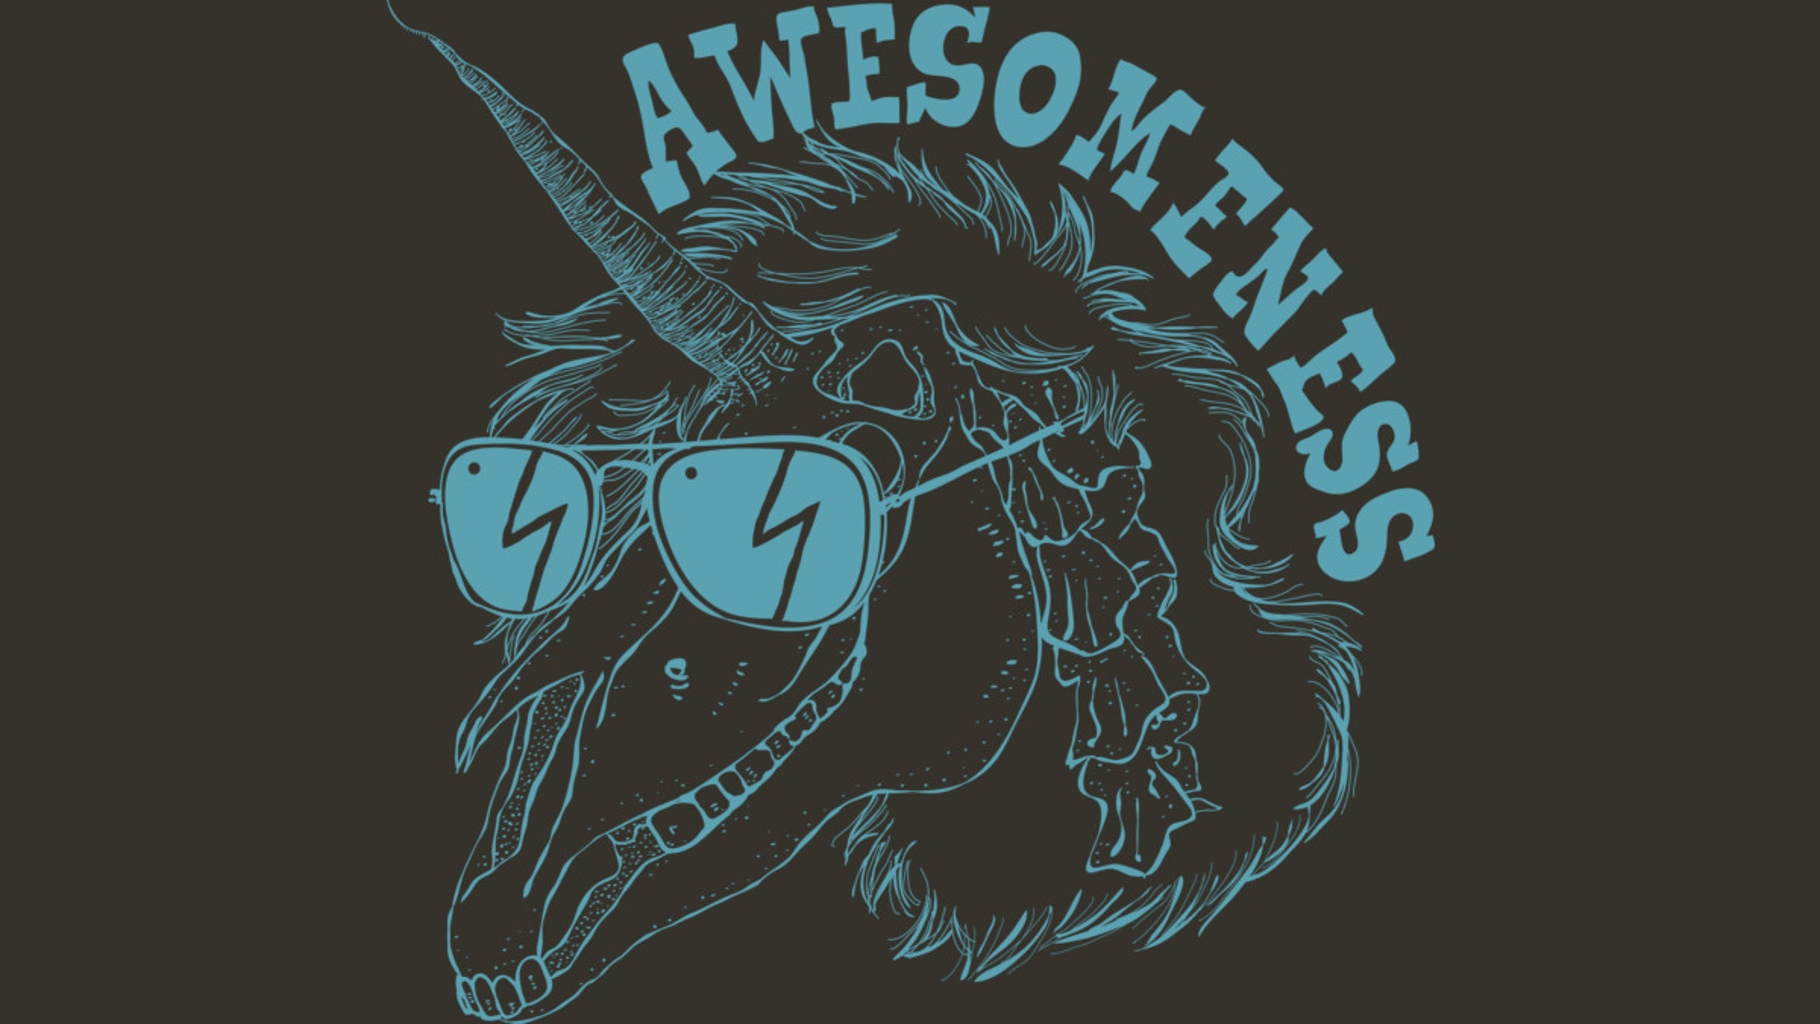 Design by Humans: Unicorn Awesomeness